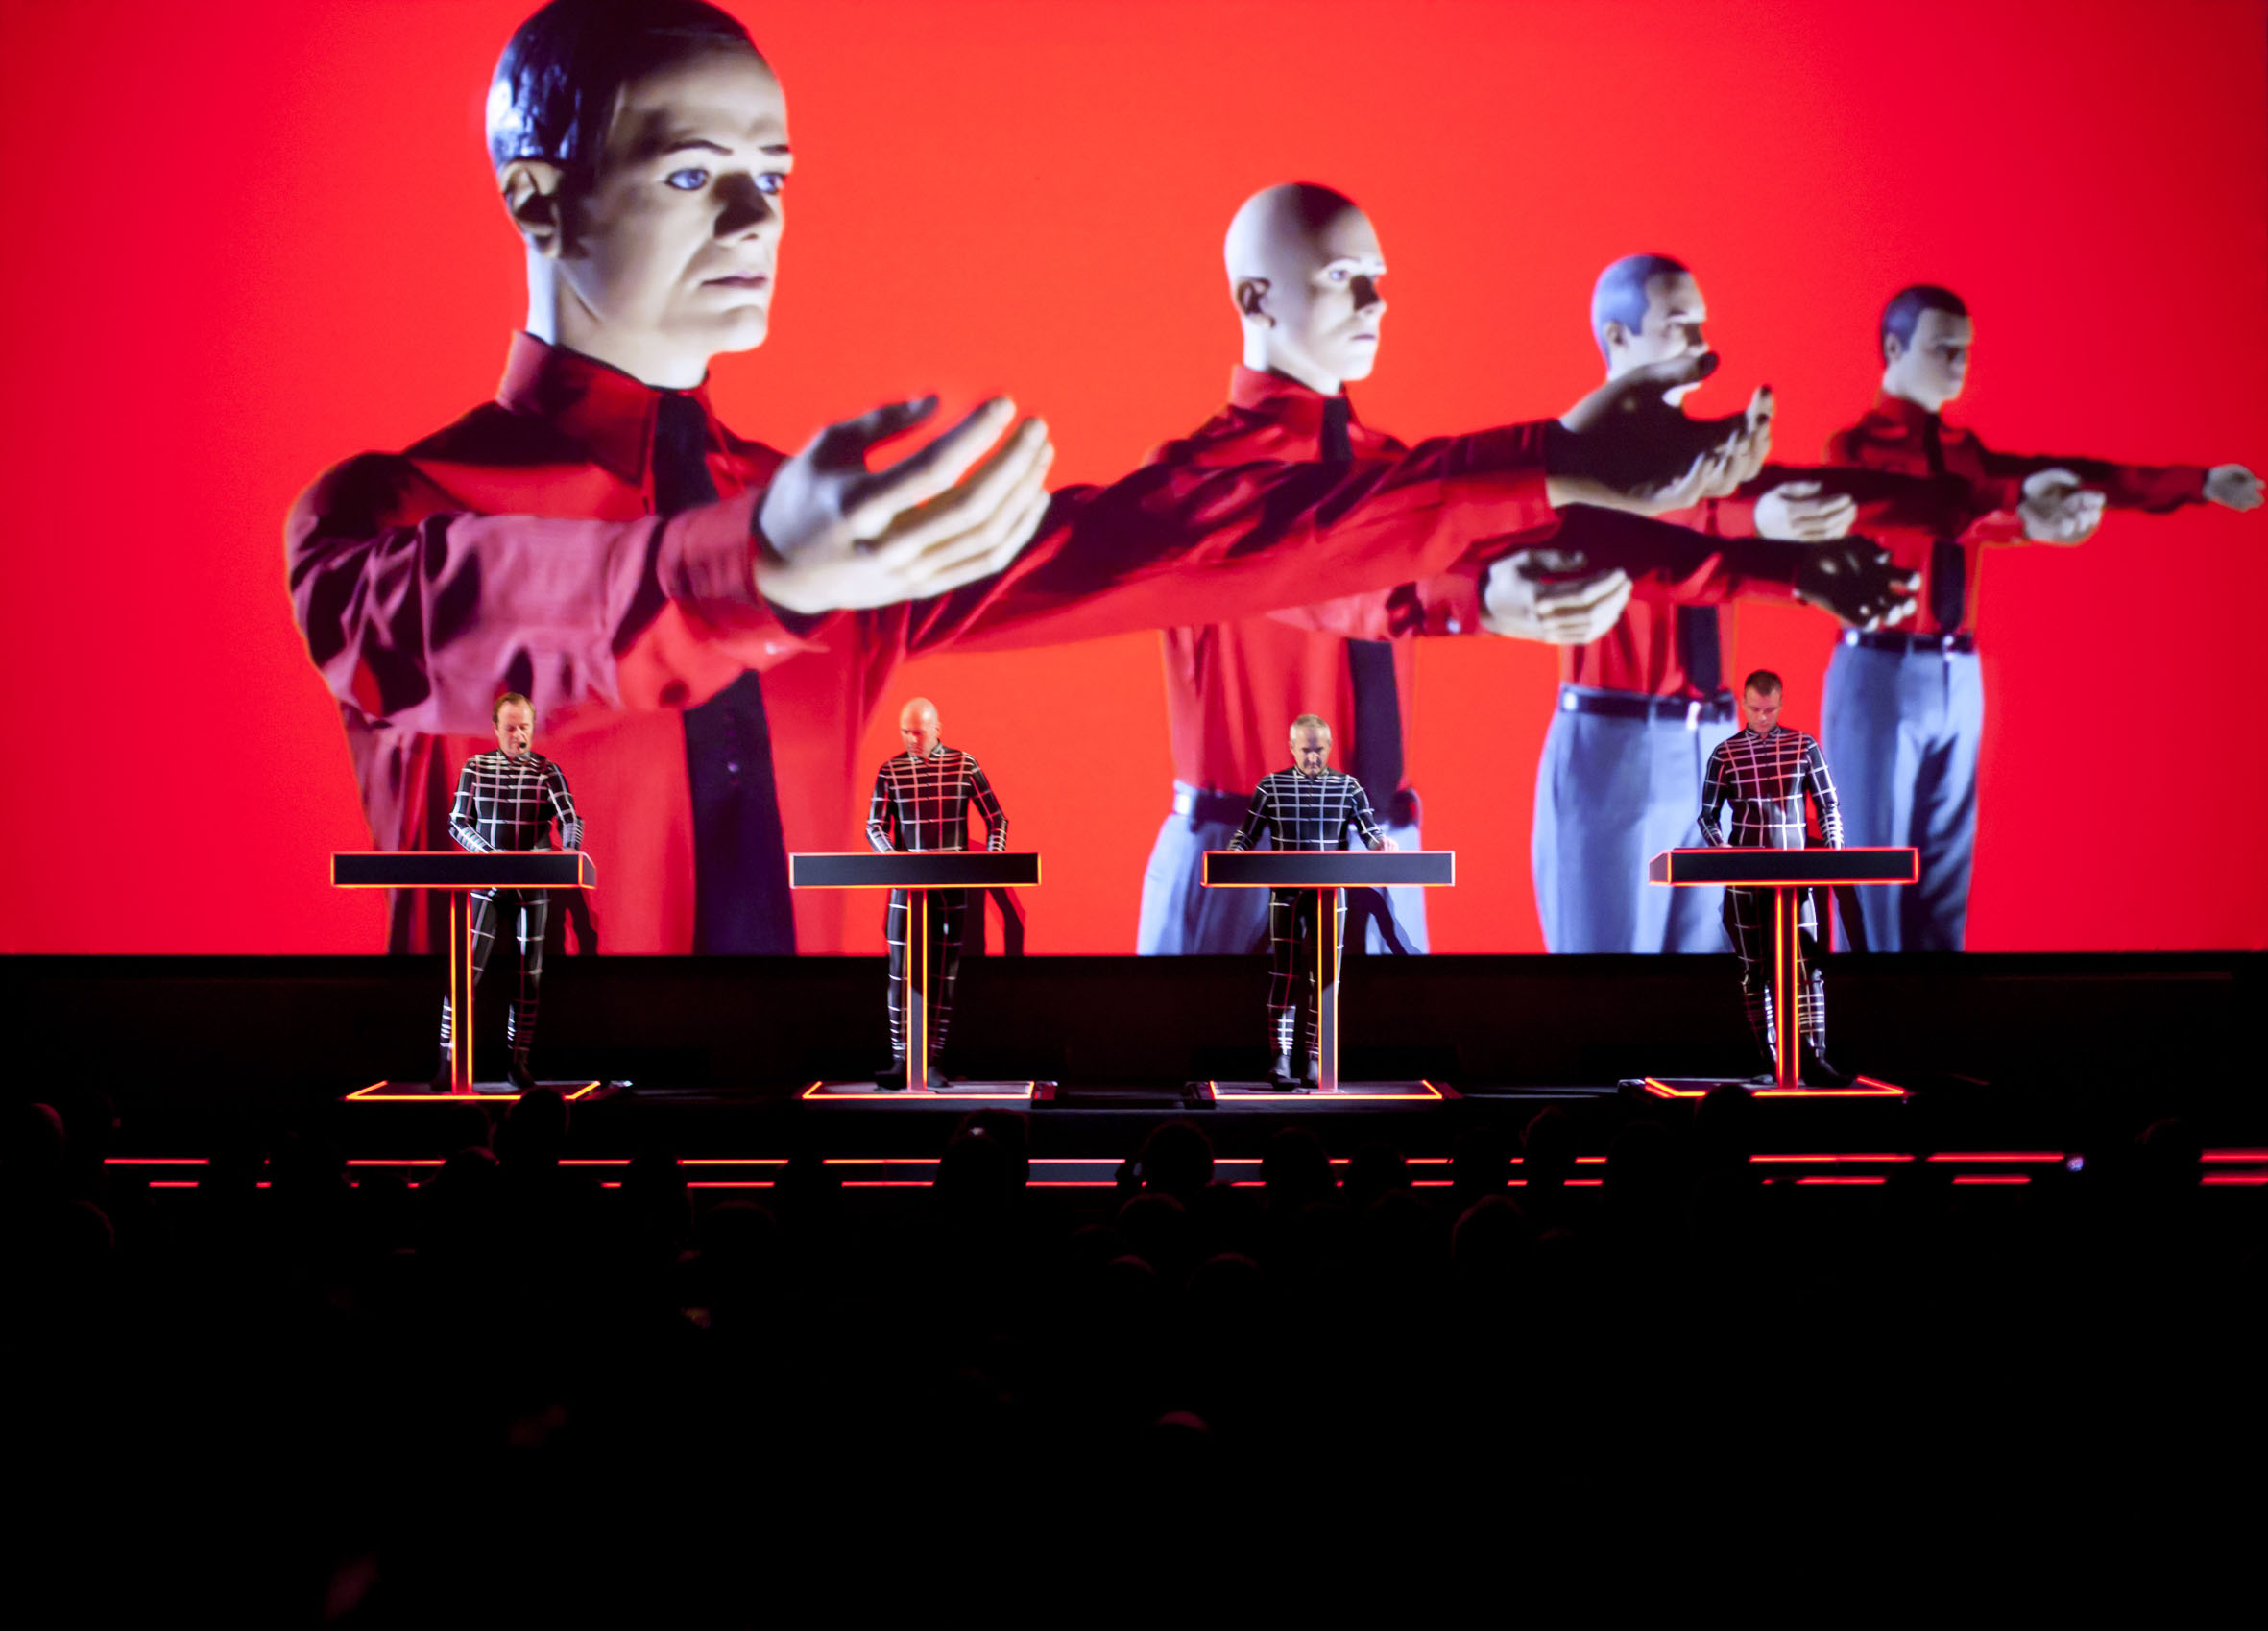 Tate Modern's Turbine Hall Presents Kraftwerk The ...Kraftwerk